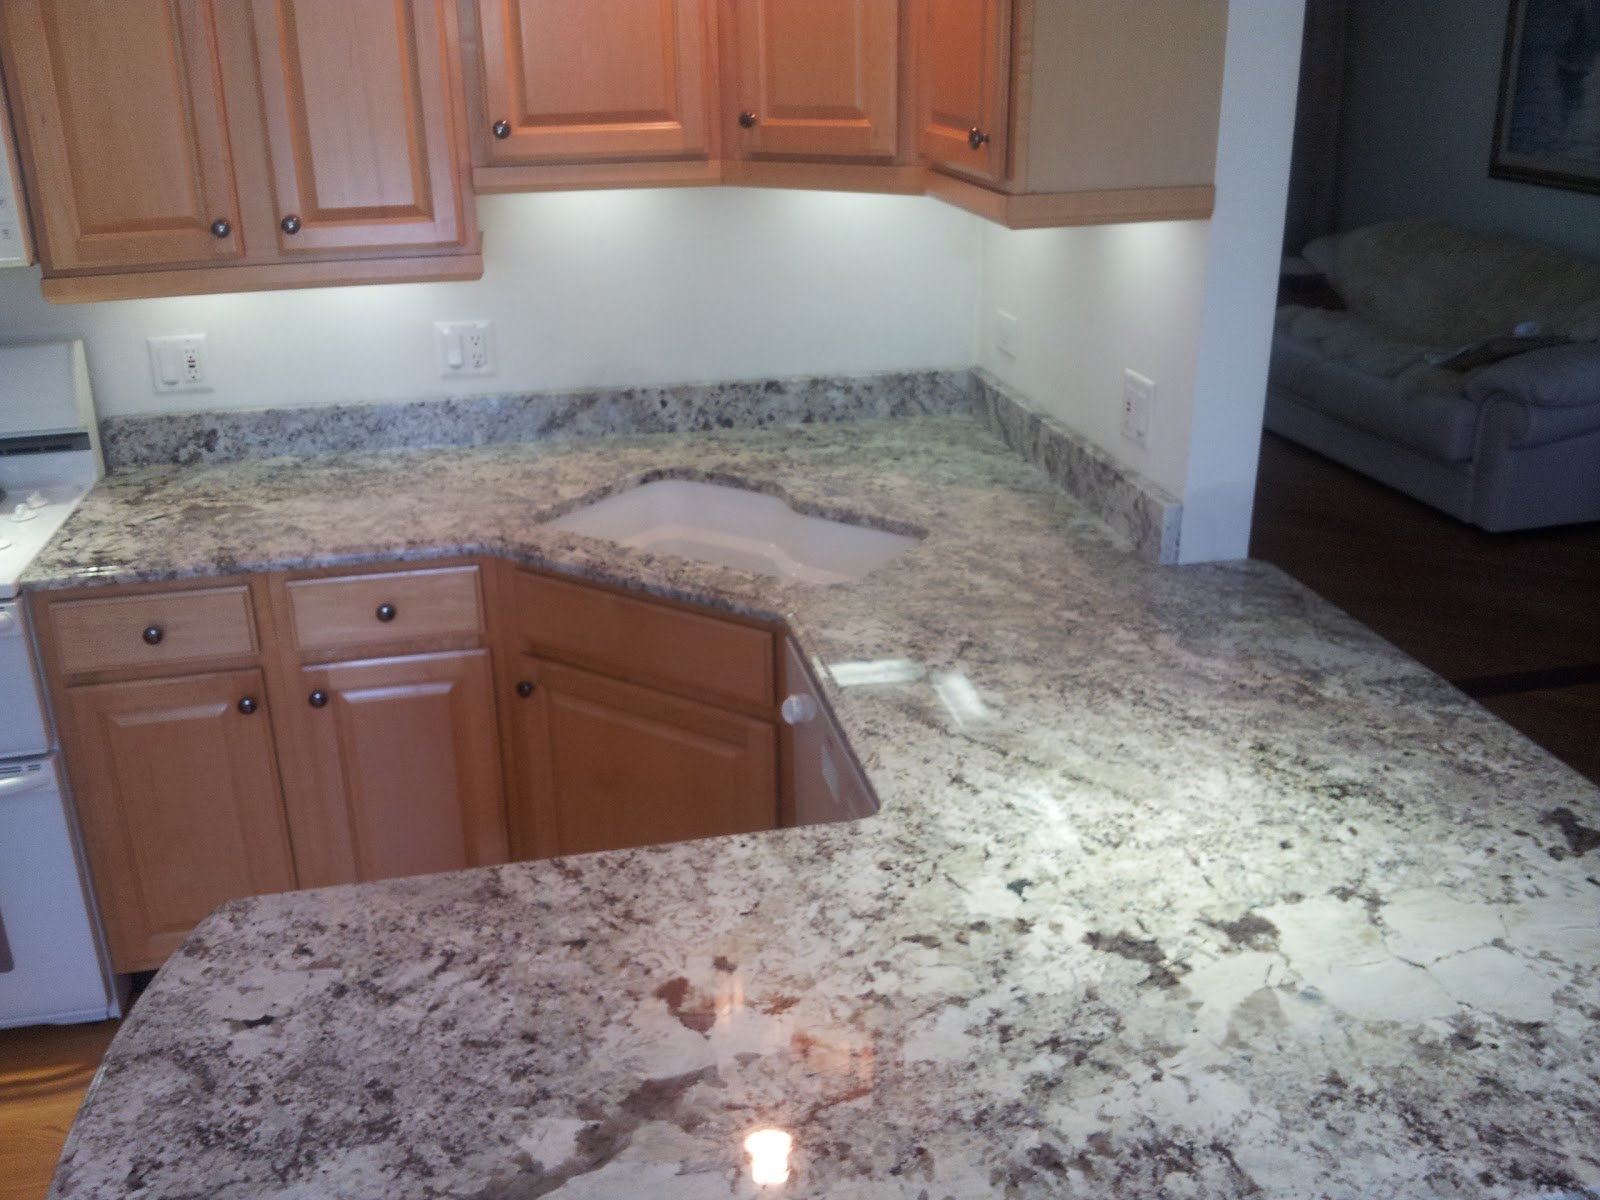 Art Granite Countertops Inc. 1020 Lunt Ave . Unit # F . Schaumburg IL 60193  Tell: 847 923 1323email:graniteatinc@gmail.com. Thank You